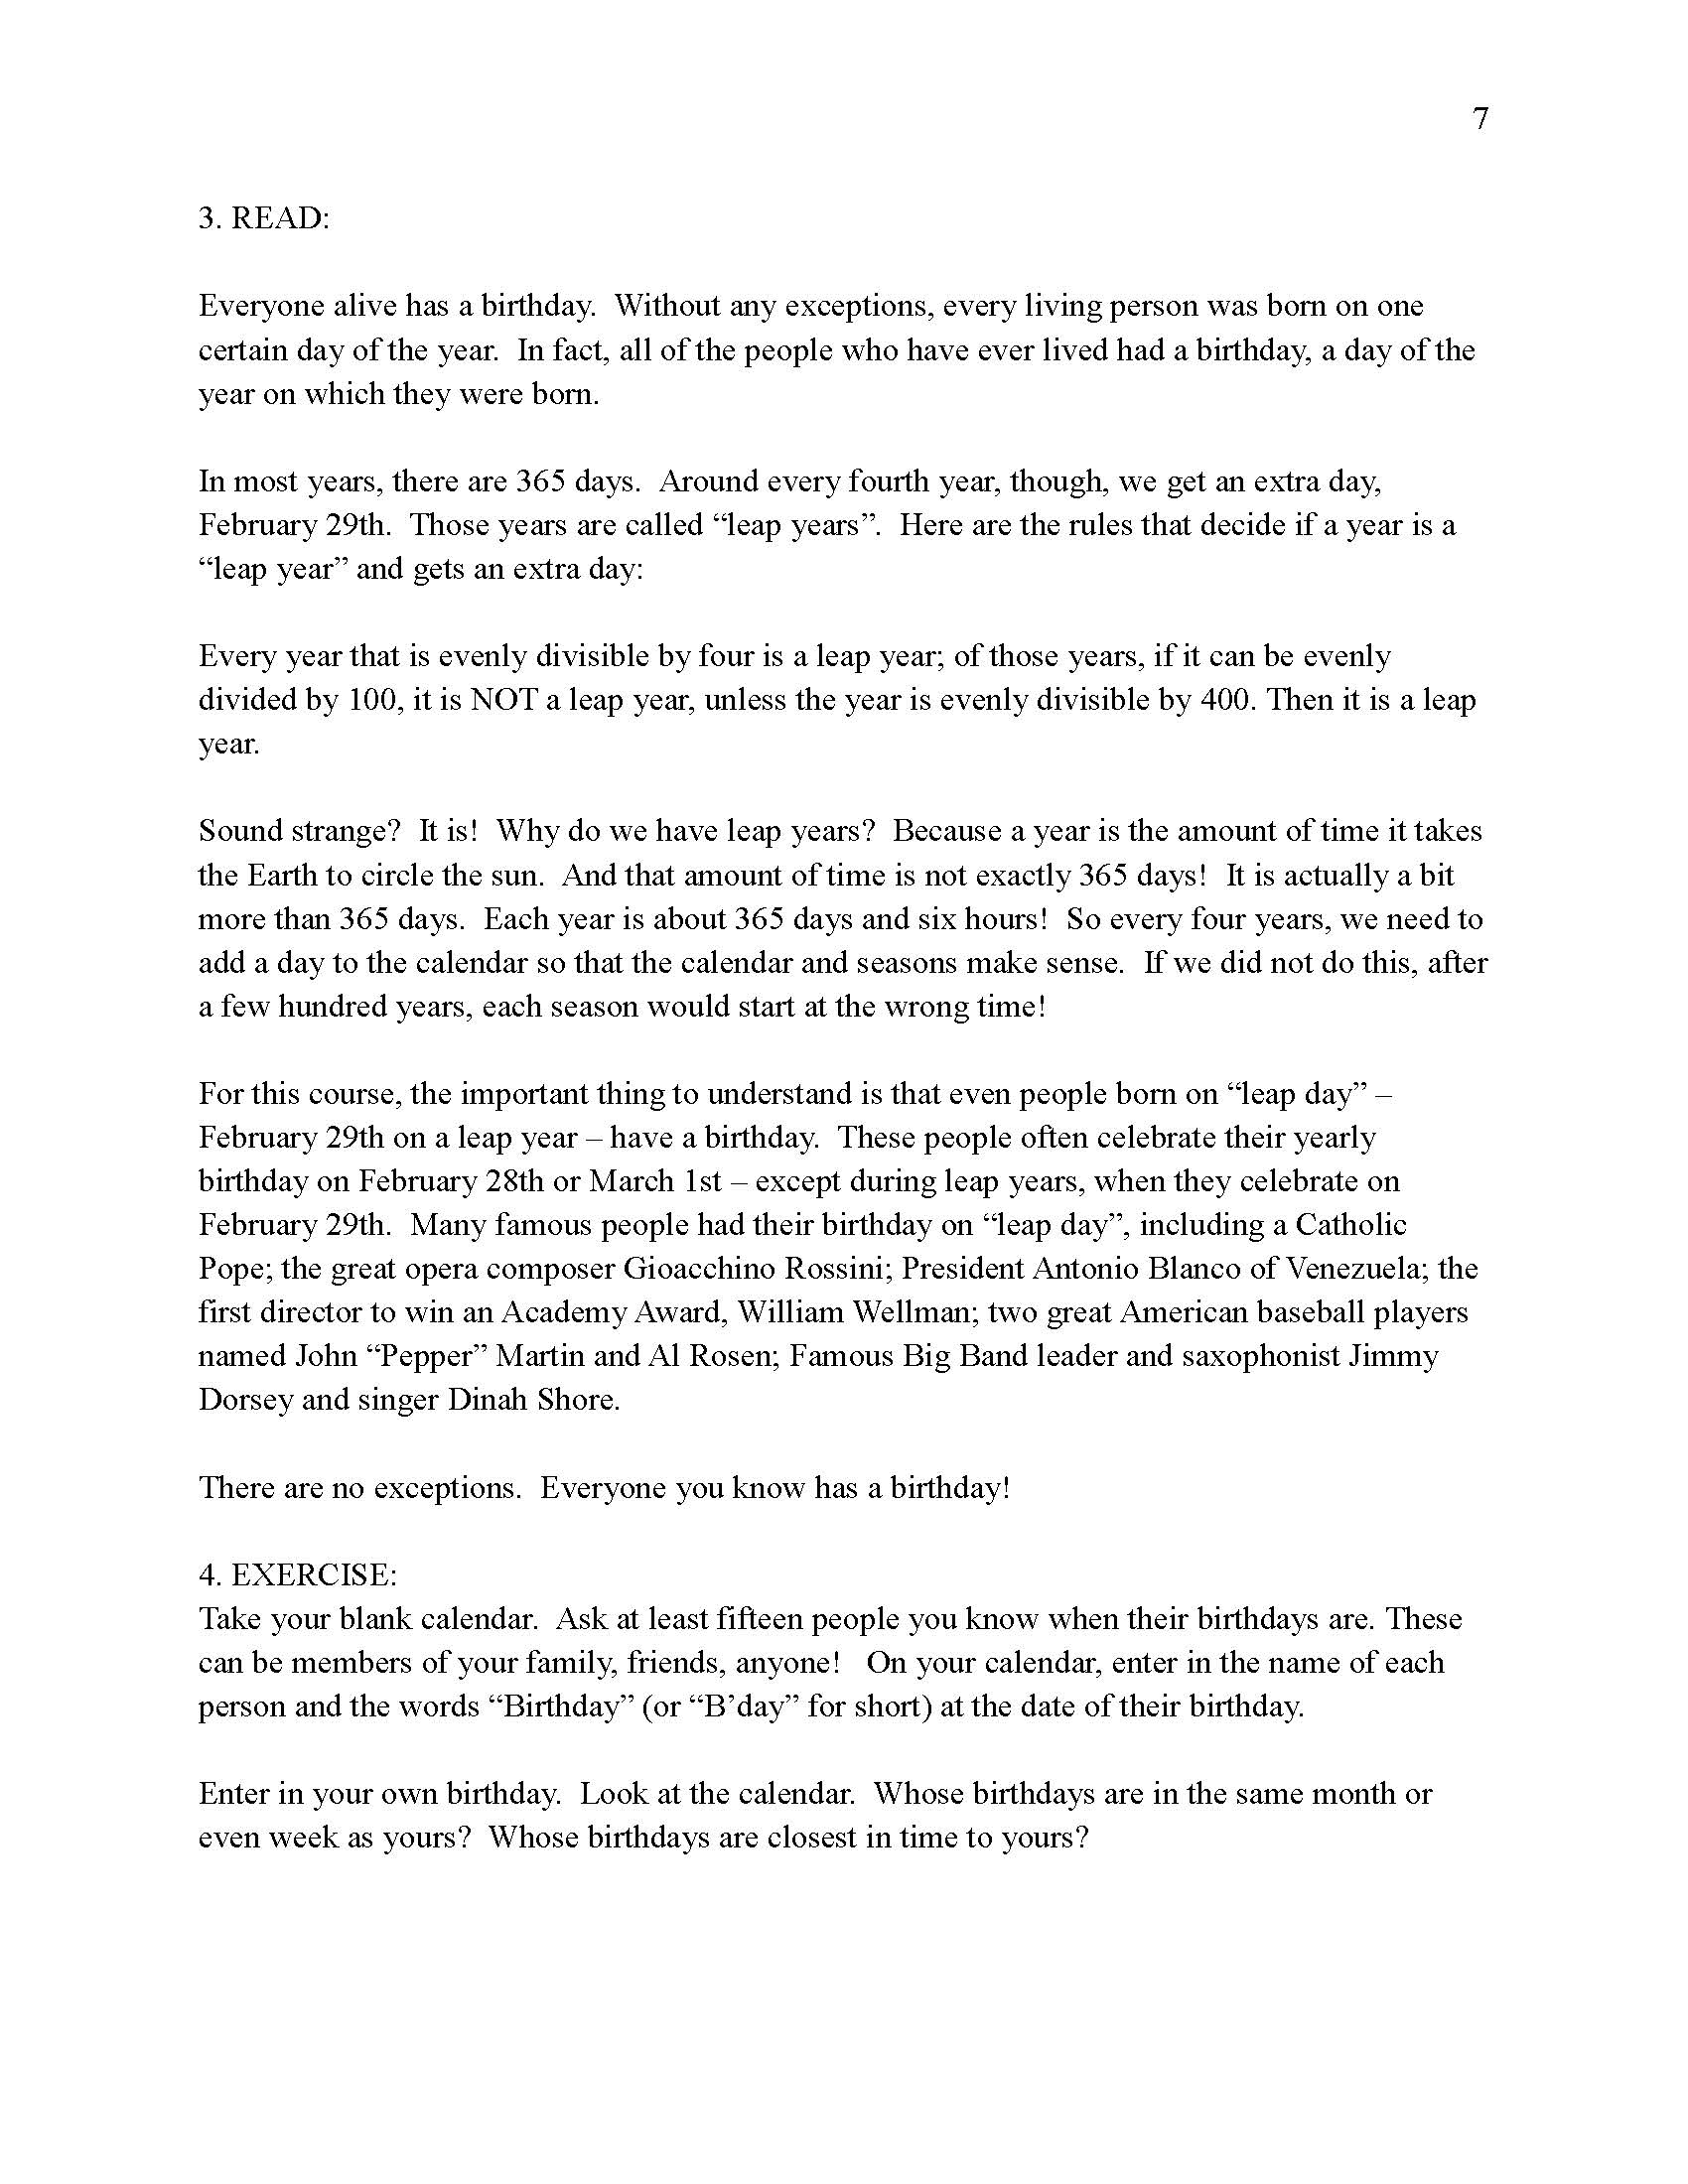 Step 3-4 It's Your Birthday! - Creative Writing & History Elective_Page_08.jpg